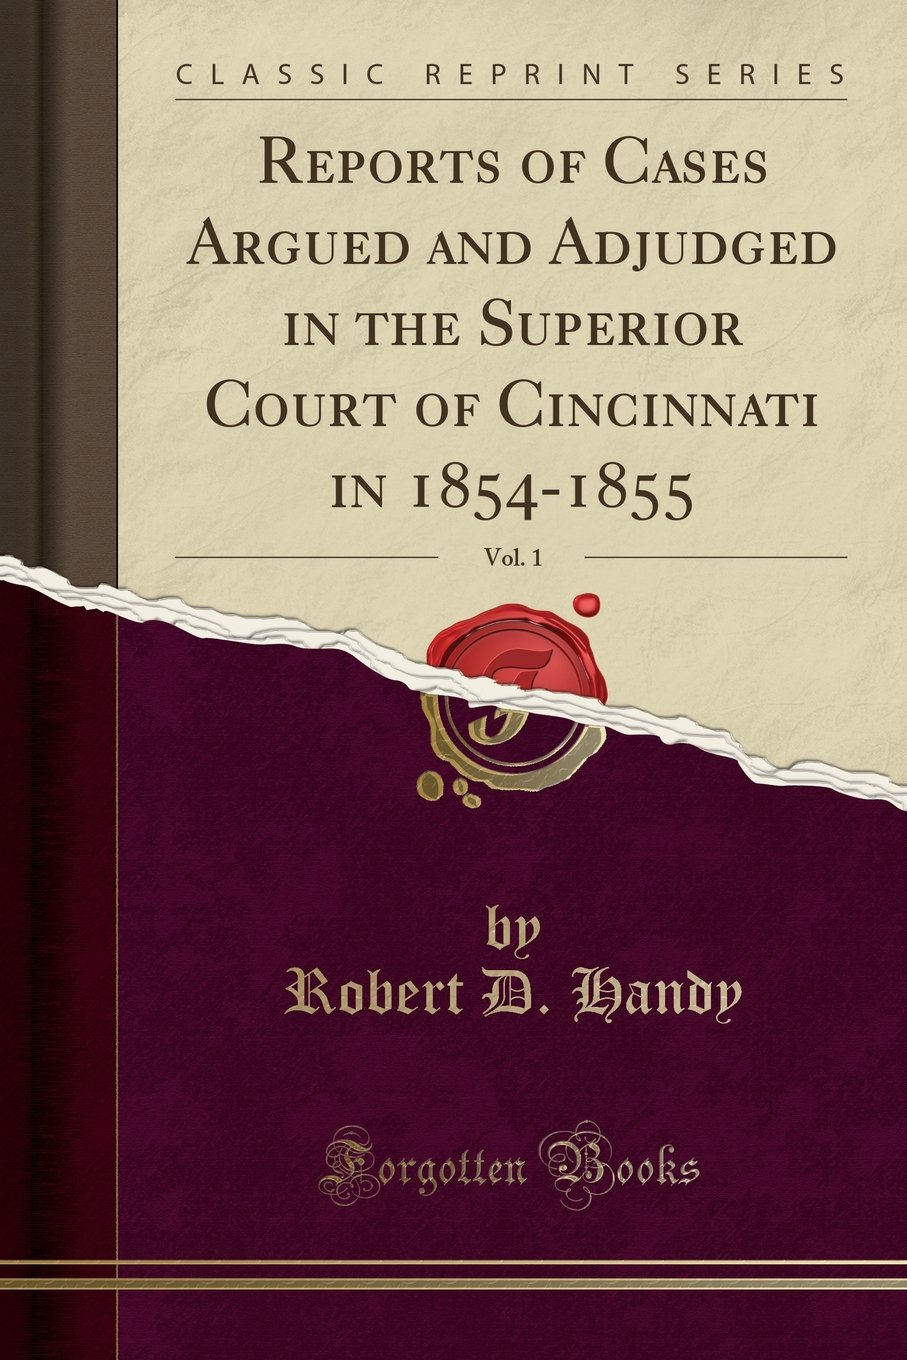 Download Reports of Cases Argued and Adjudged in the Superior Court of Cincinnati in 1854-1855, Vol. 1 (Classic Reprint) pdf